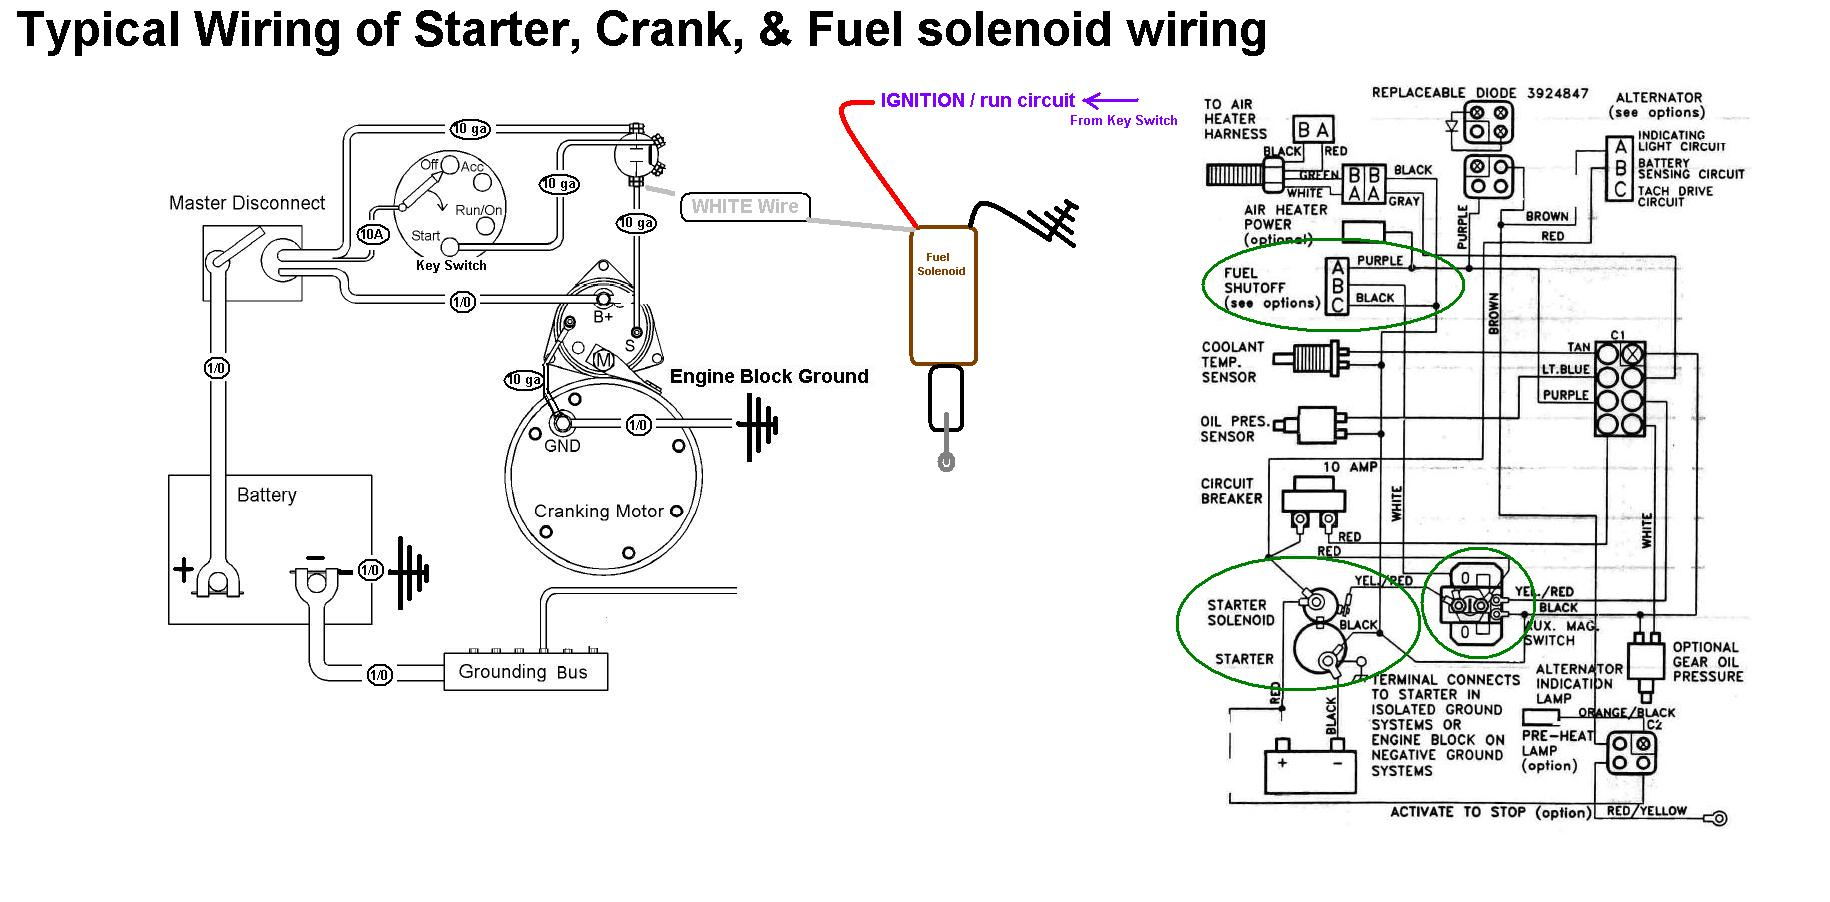 Ford Tractor Alternator Wiring Diagram Will Be A 8n Harness Starter Crank Fuel Shutoff Solenoid Seaboard 601 For 12 Volt Conversion